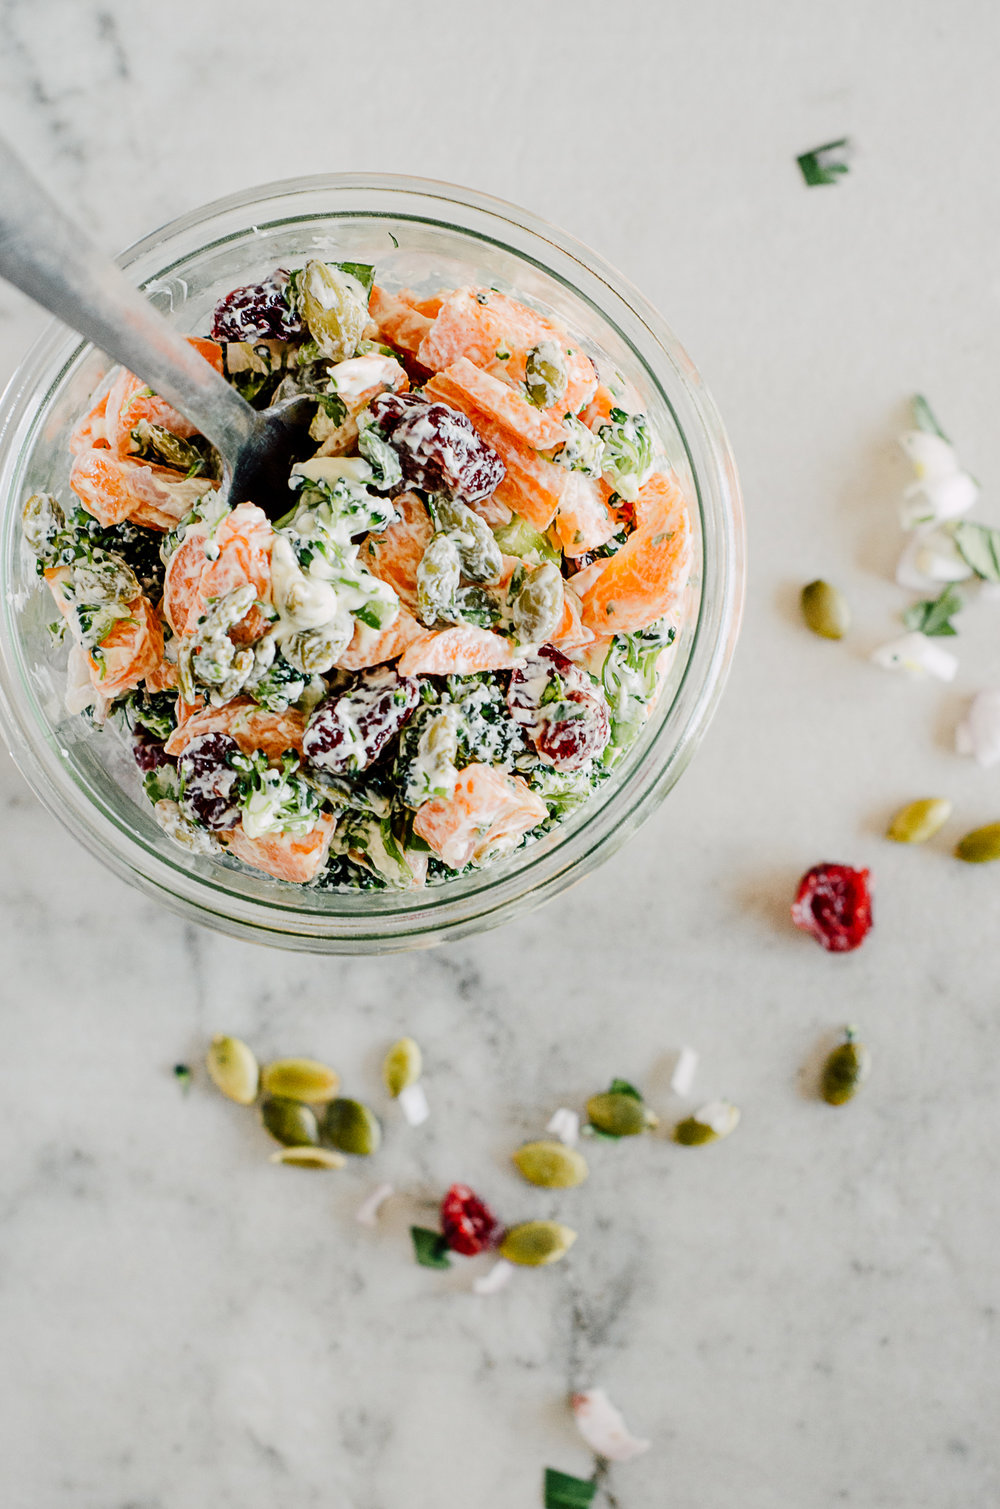 Creamy broccoli & carrot salad - the nomadic wife